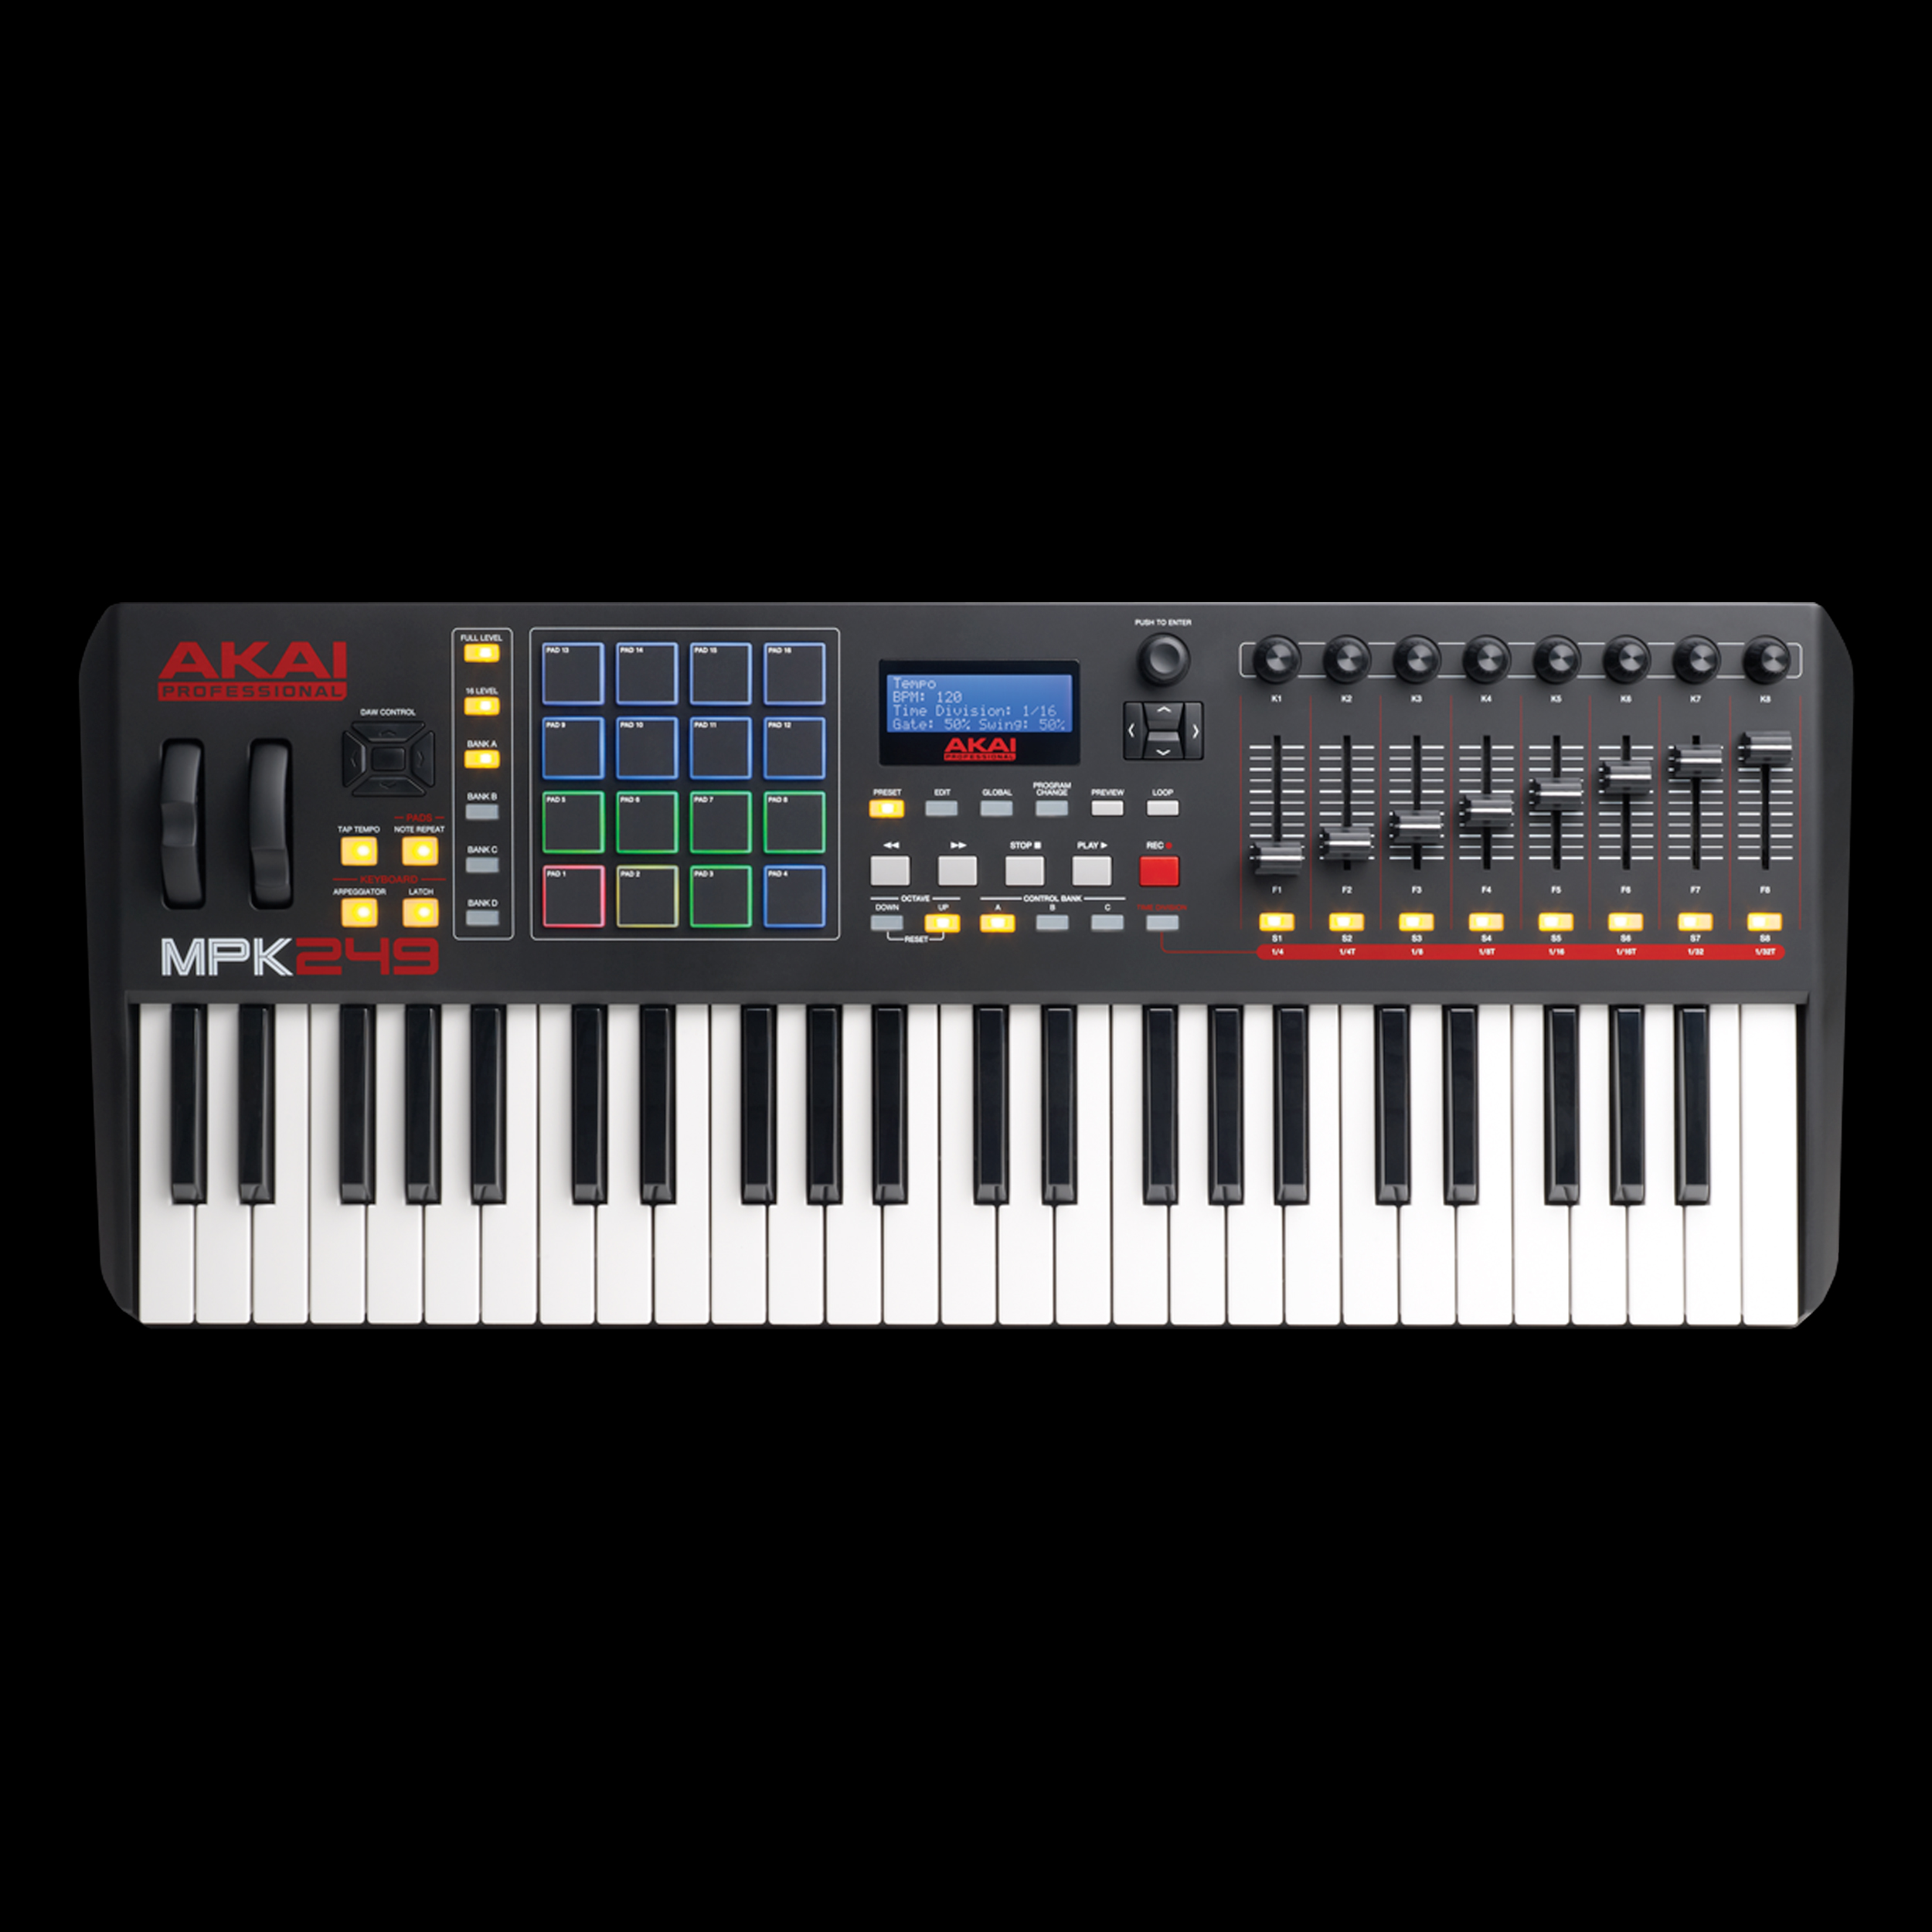 Akai Professional MPK249 | 49-Key USB MIDI Keyboard & Drum Pad Controller with LCD Screen by inMusic Brands, Inc